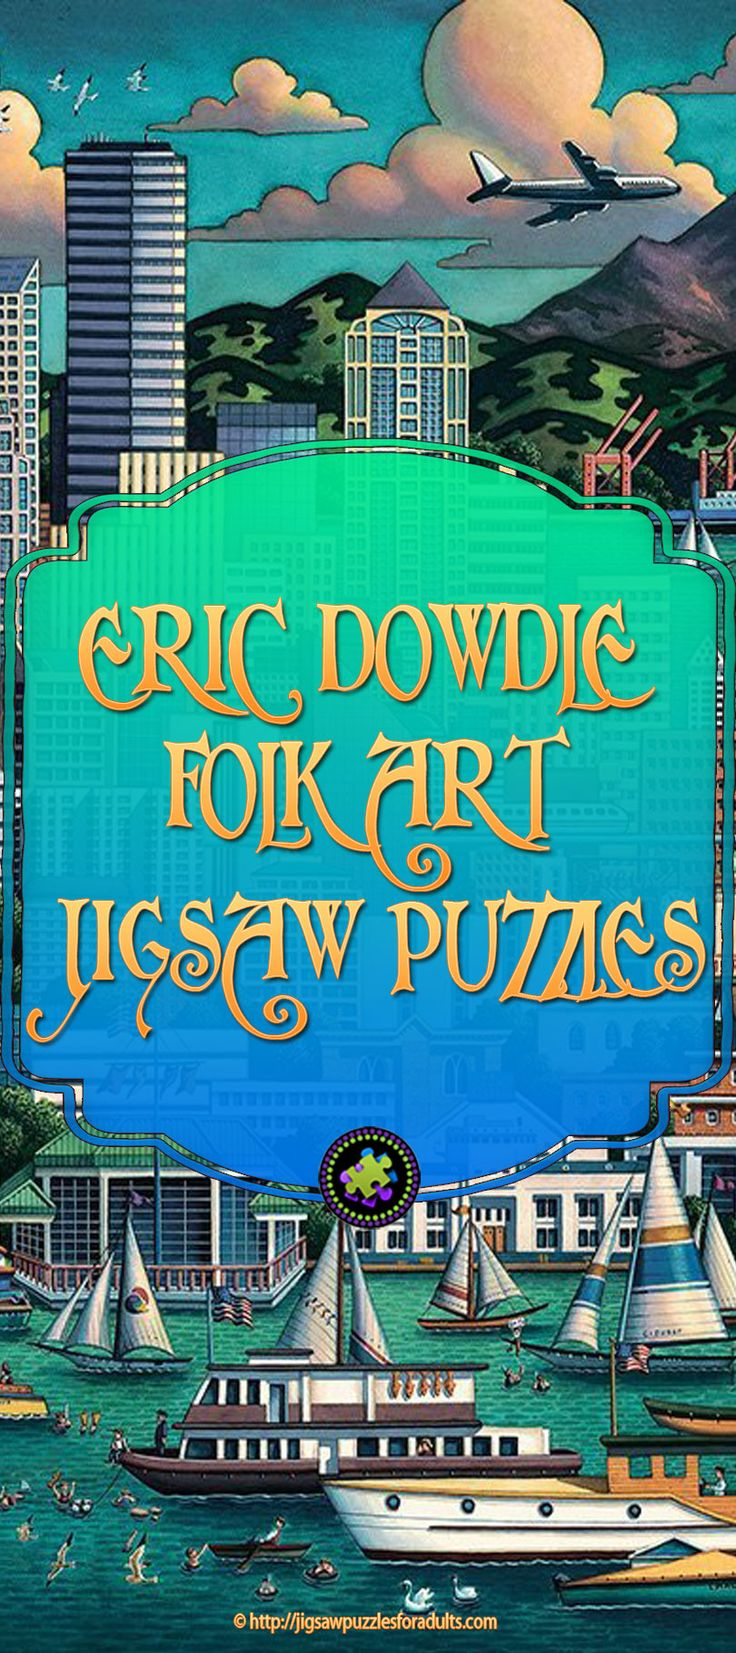 Eric Dowdle Folk Art Puzzles are genuinely unique and fun to work on.Each Folk Art Jigsaw Puzzle by Eric Dowdle tells a memorable story and is vividly illustrated. You'll love the great selection of Eric Dowdle Folk Art jigsaw puzzles for adults.